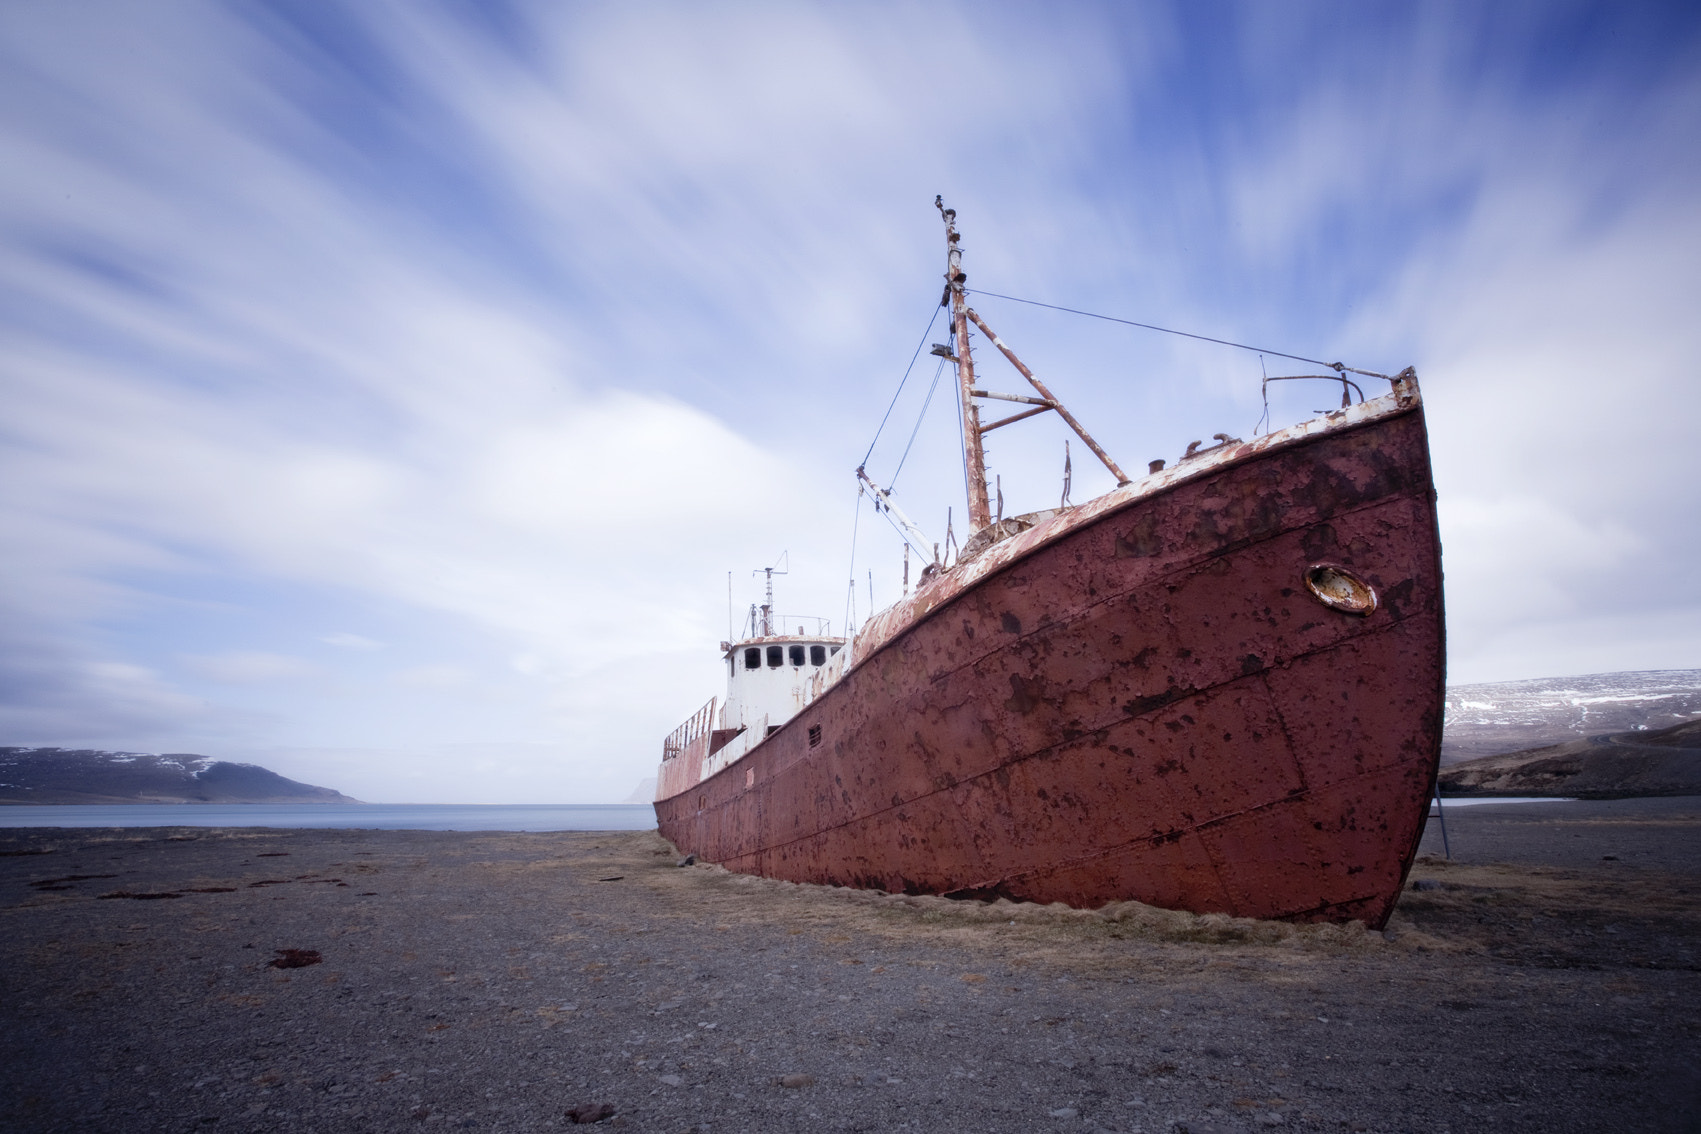 Photograph Beached by Rebekka Guðleifsdóttir on 500px